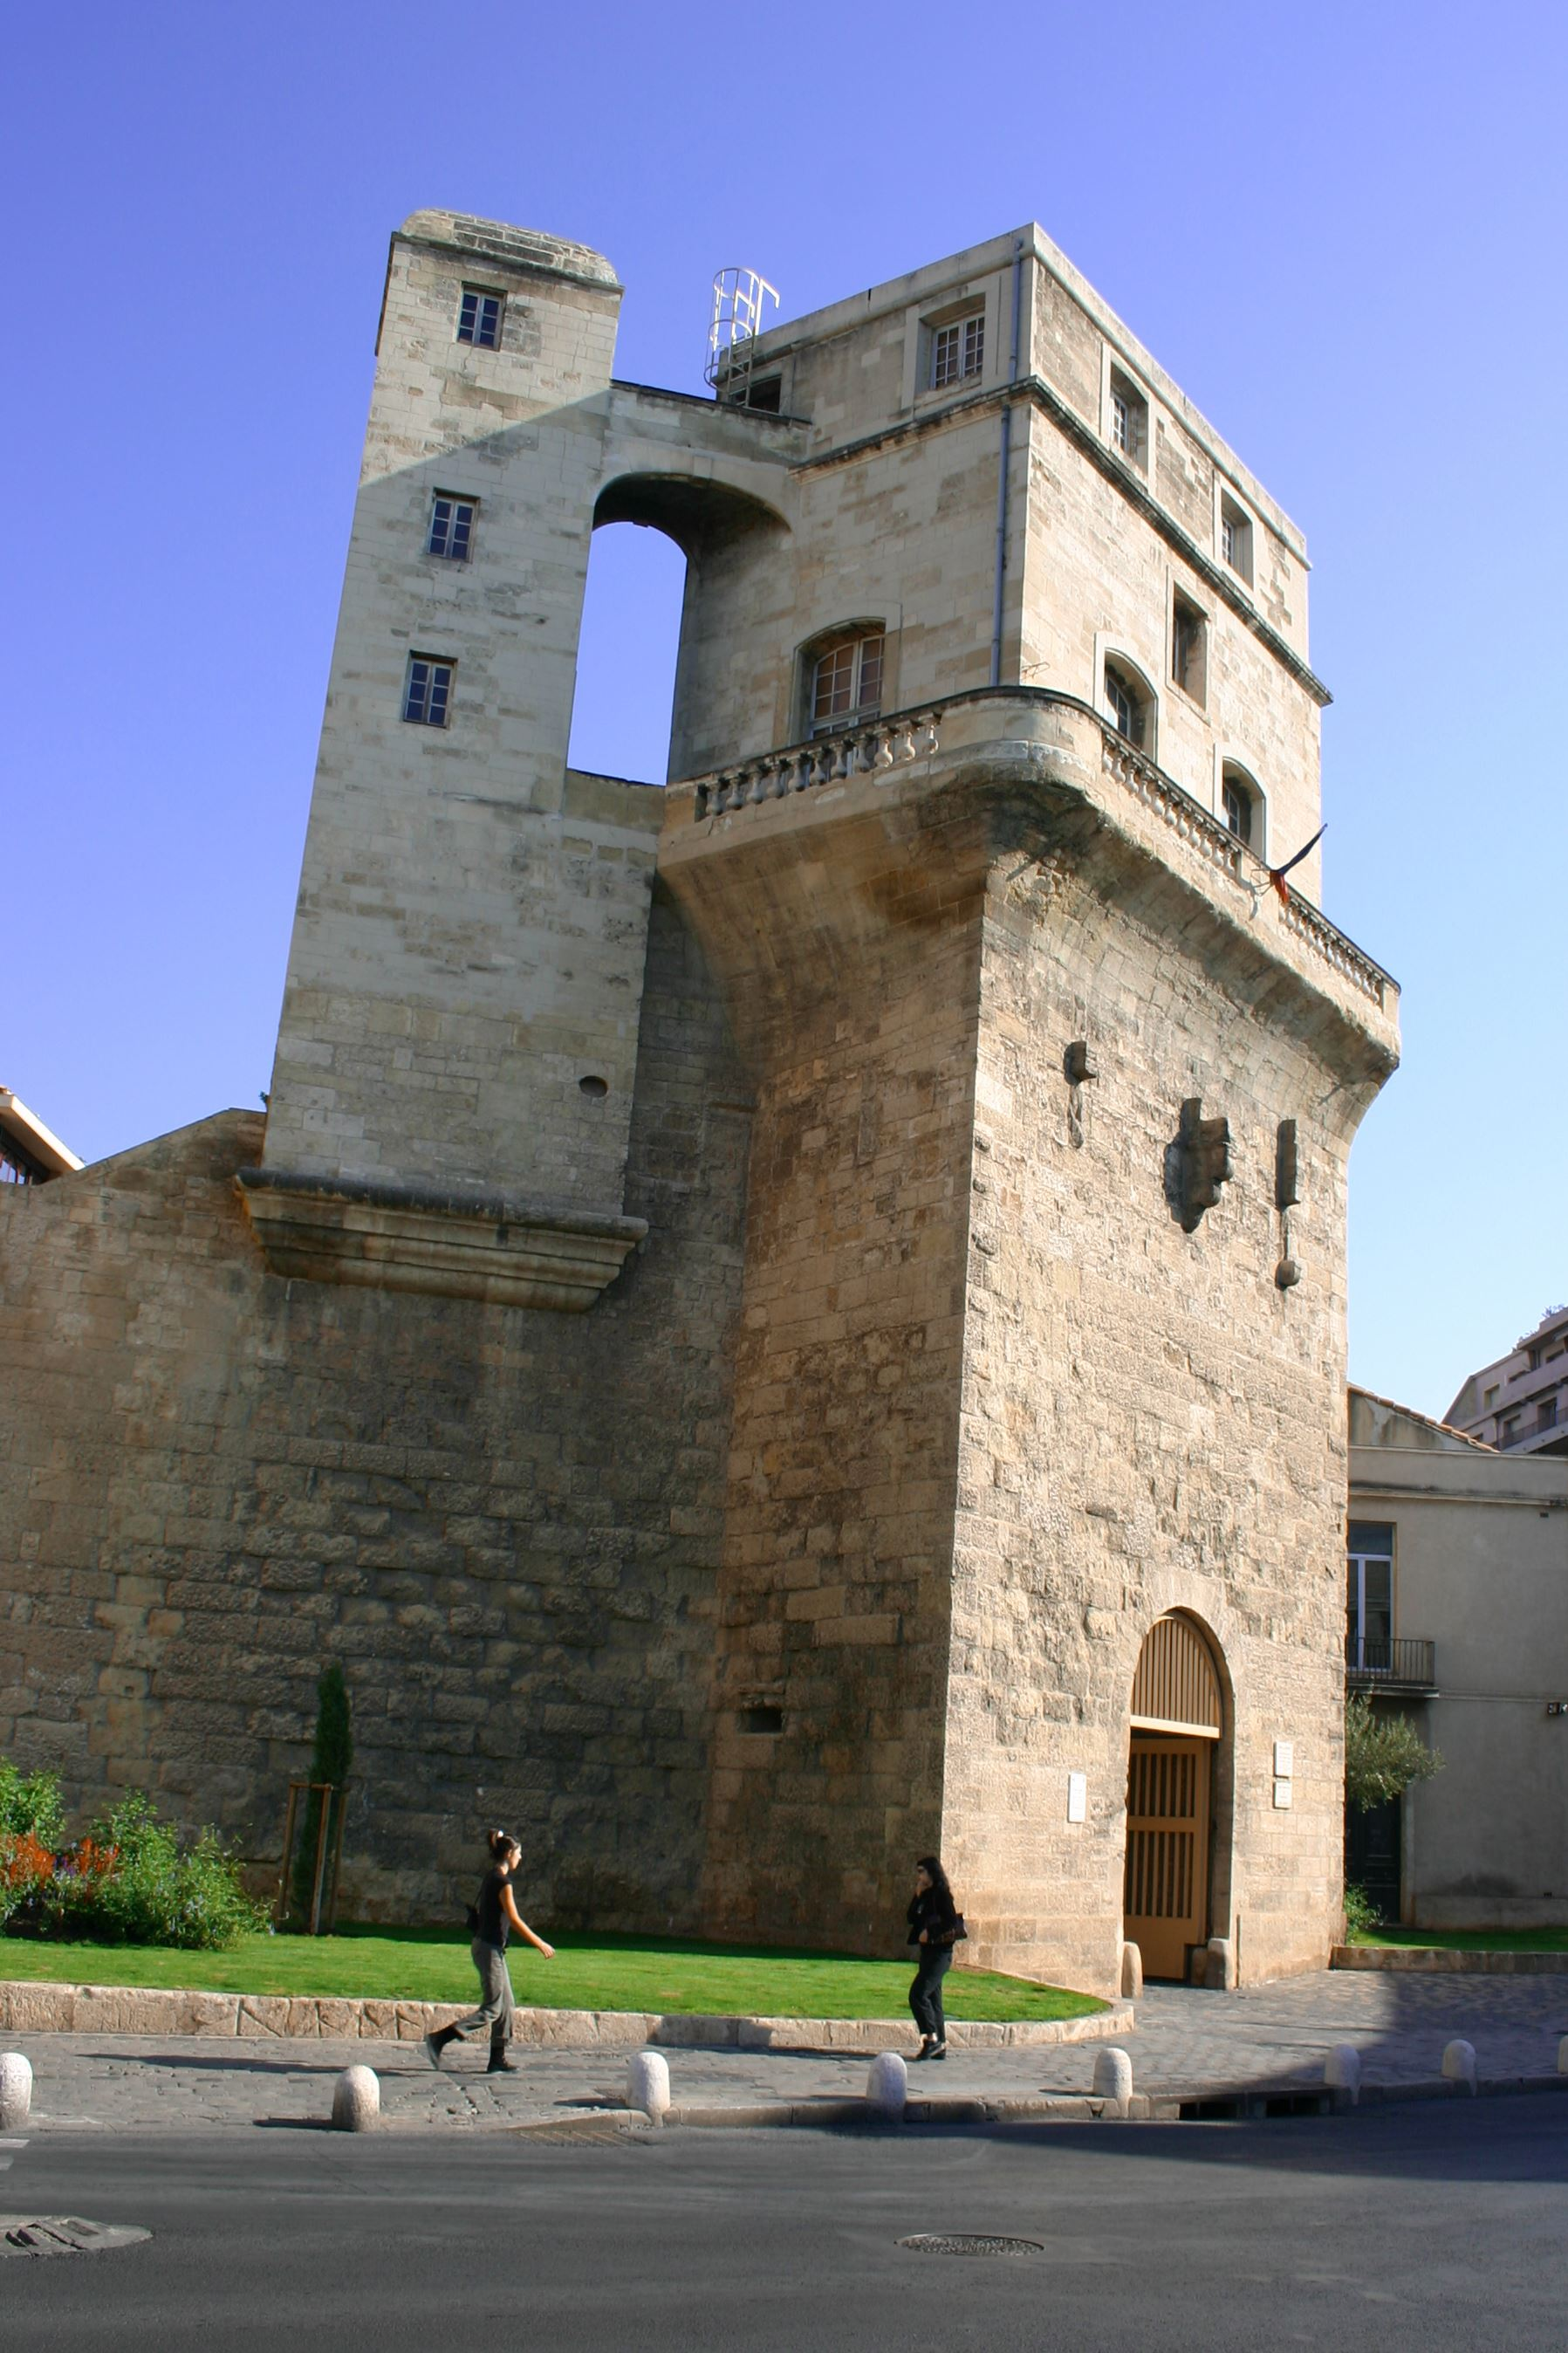 Tour de la Babote - The Tower of Babote